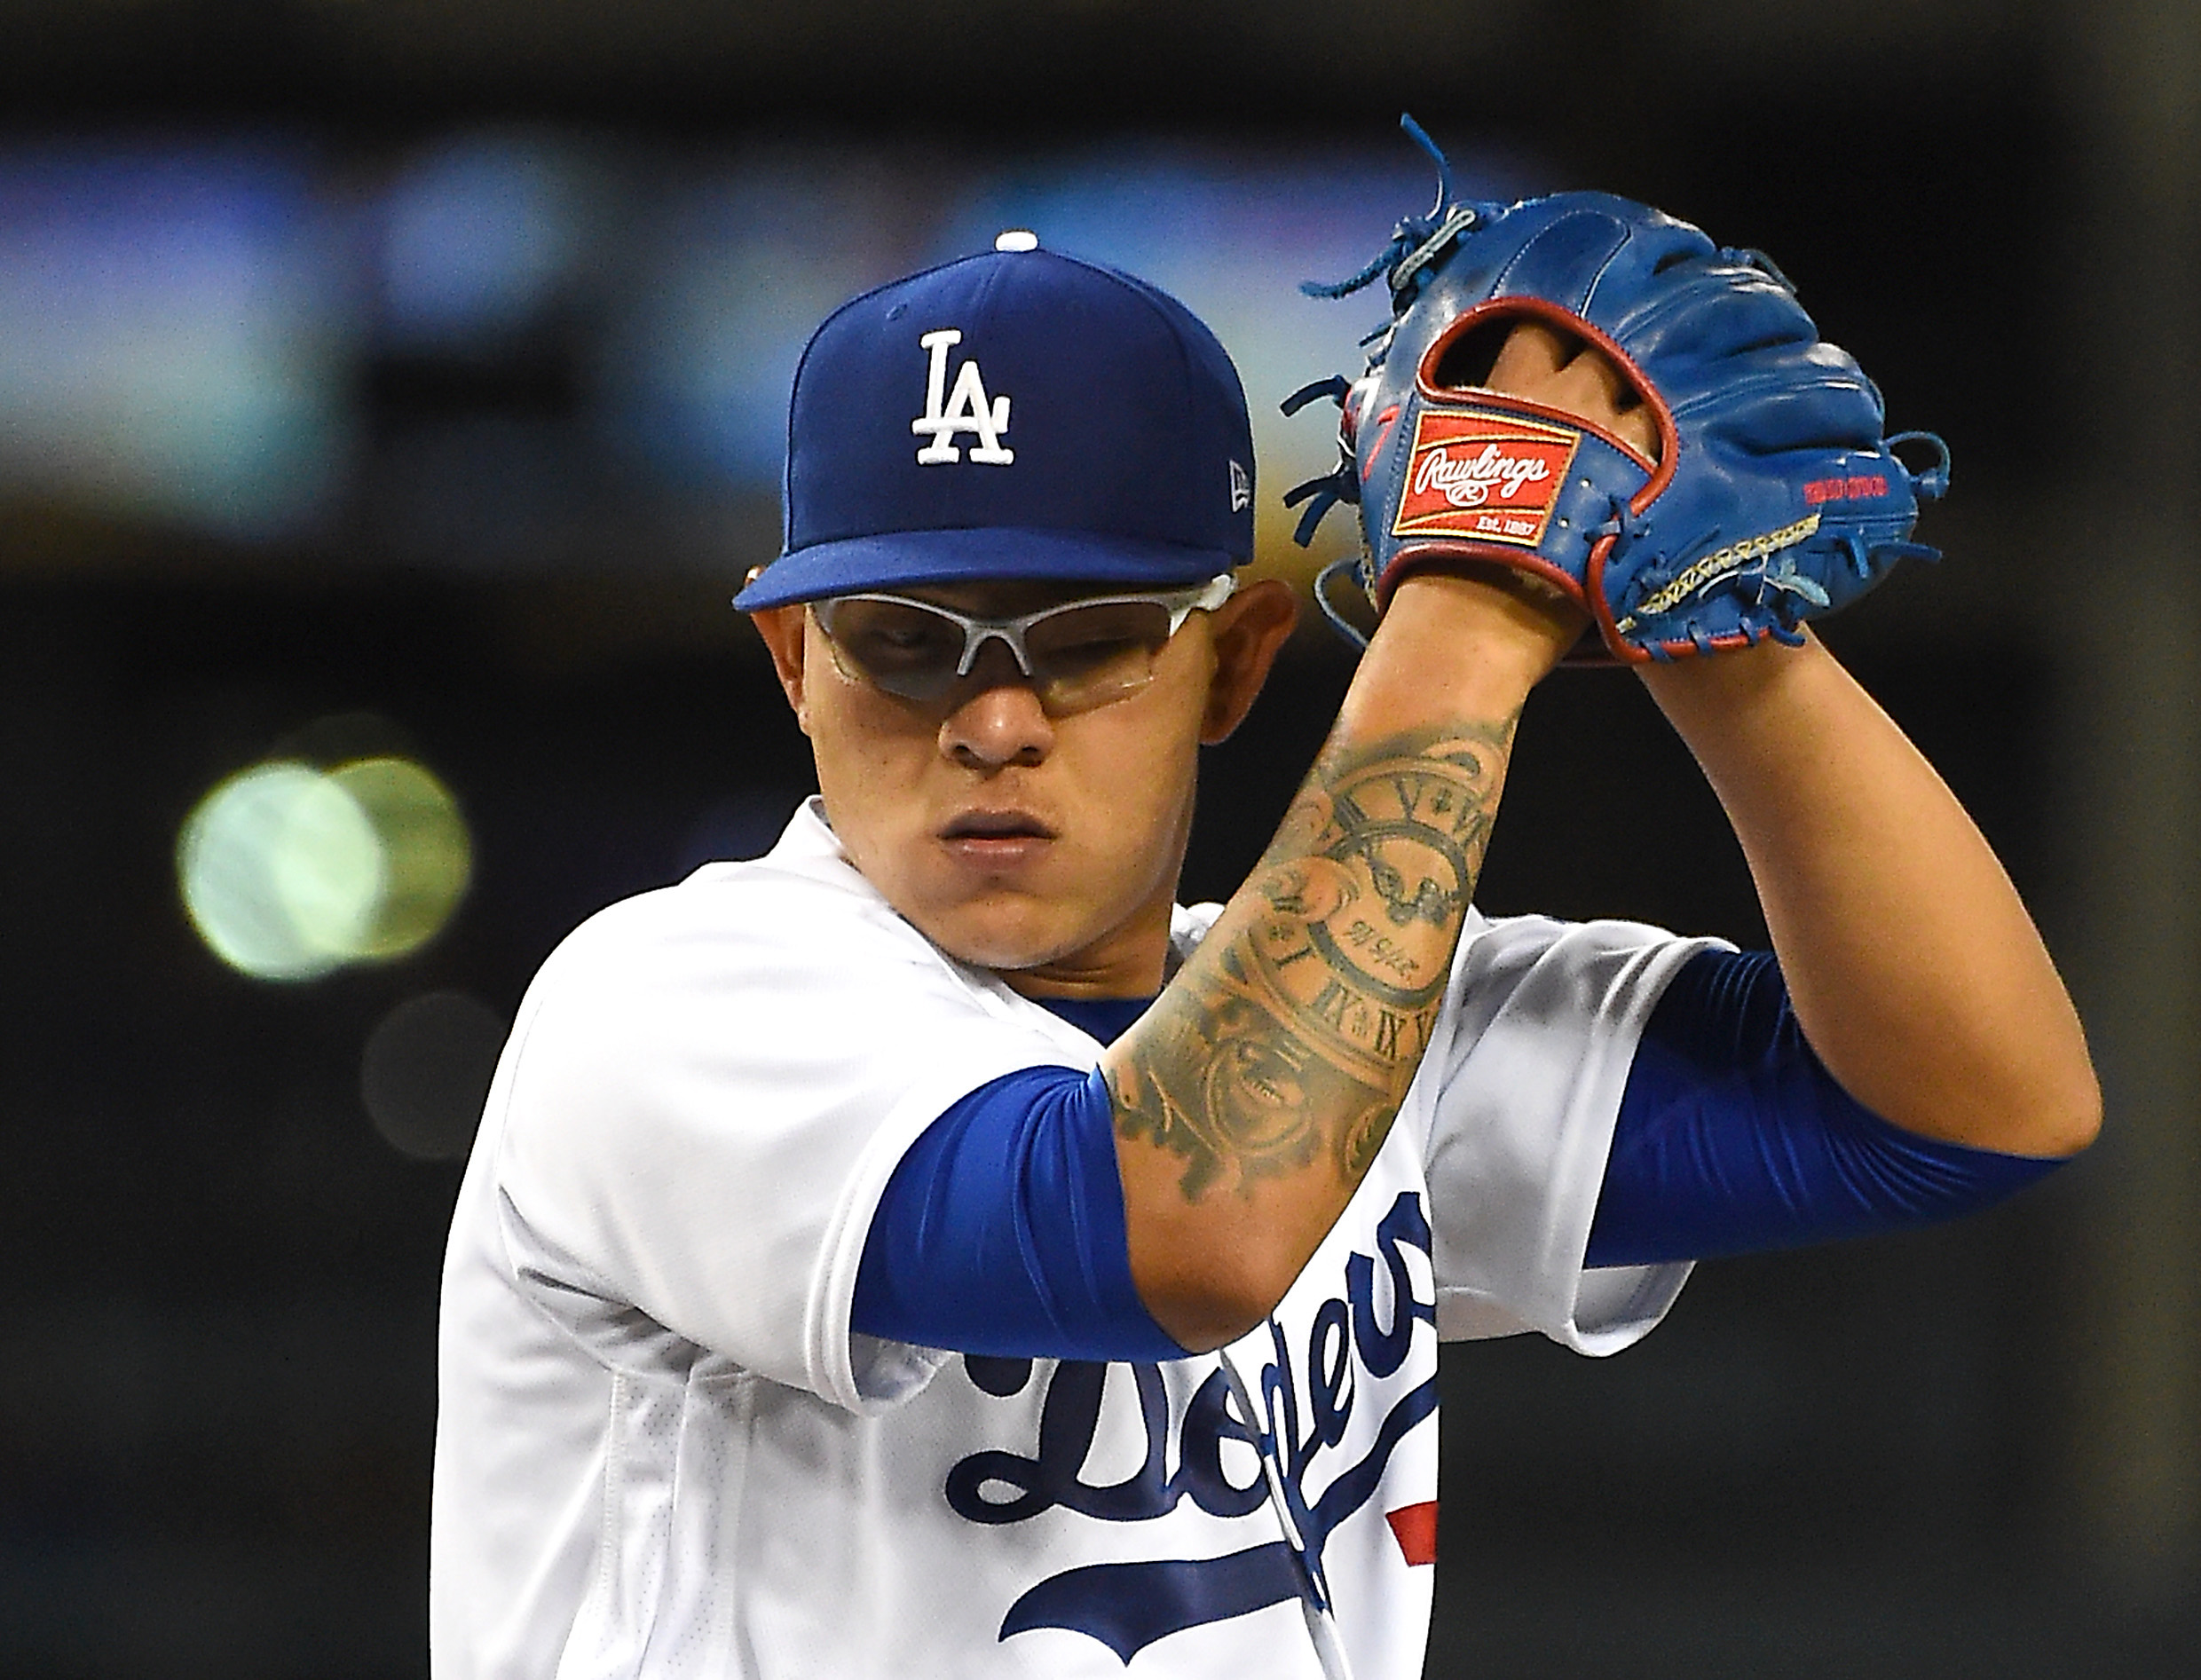 Los Angeles Dodgers: Julio Urias sent back to the minors